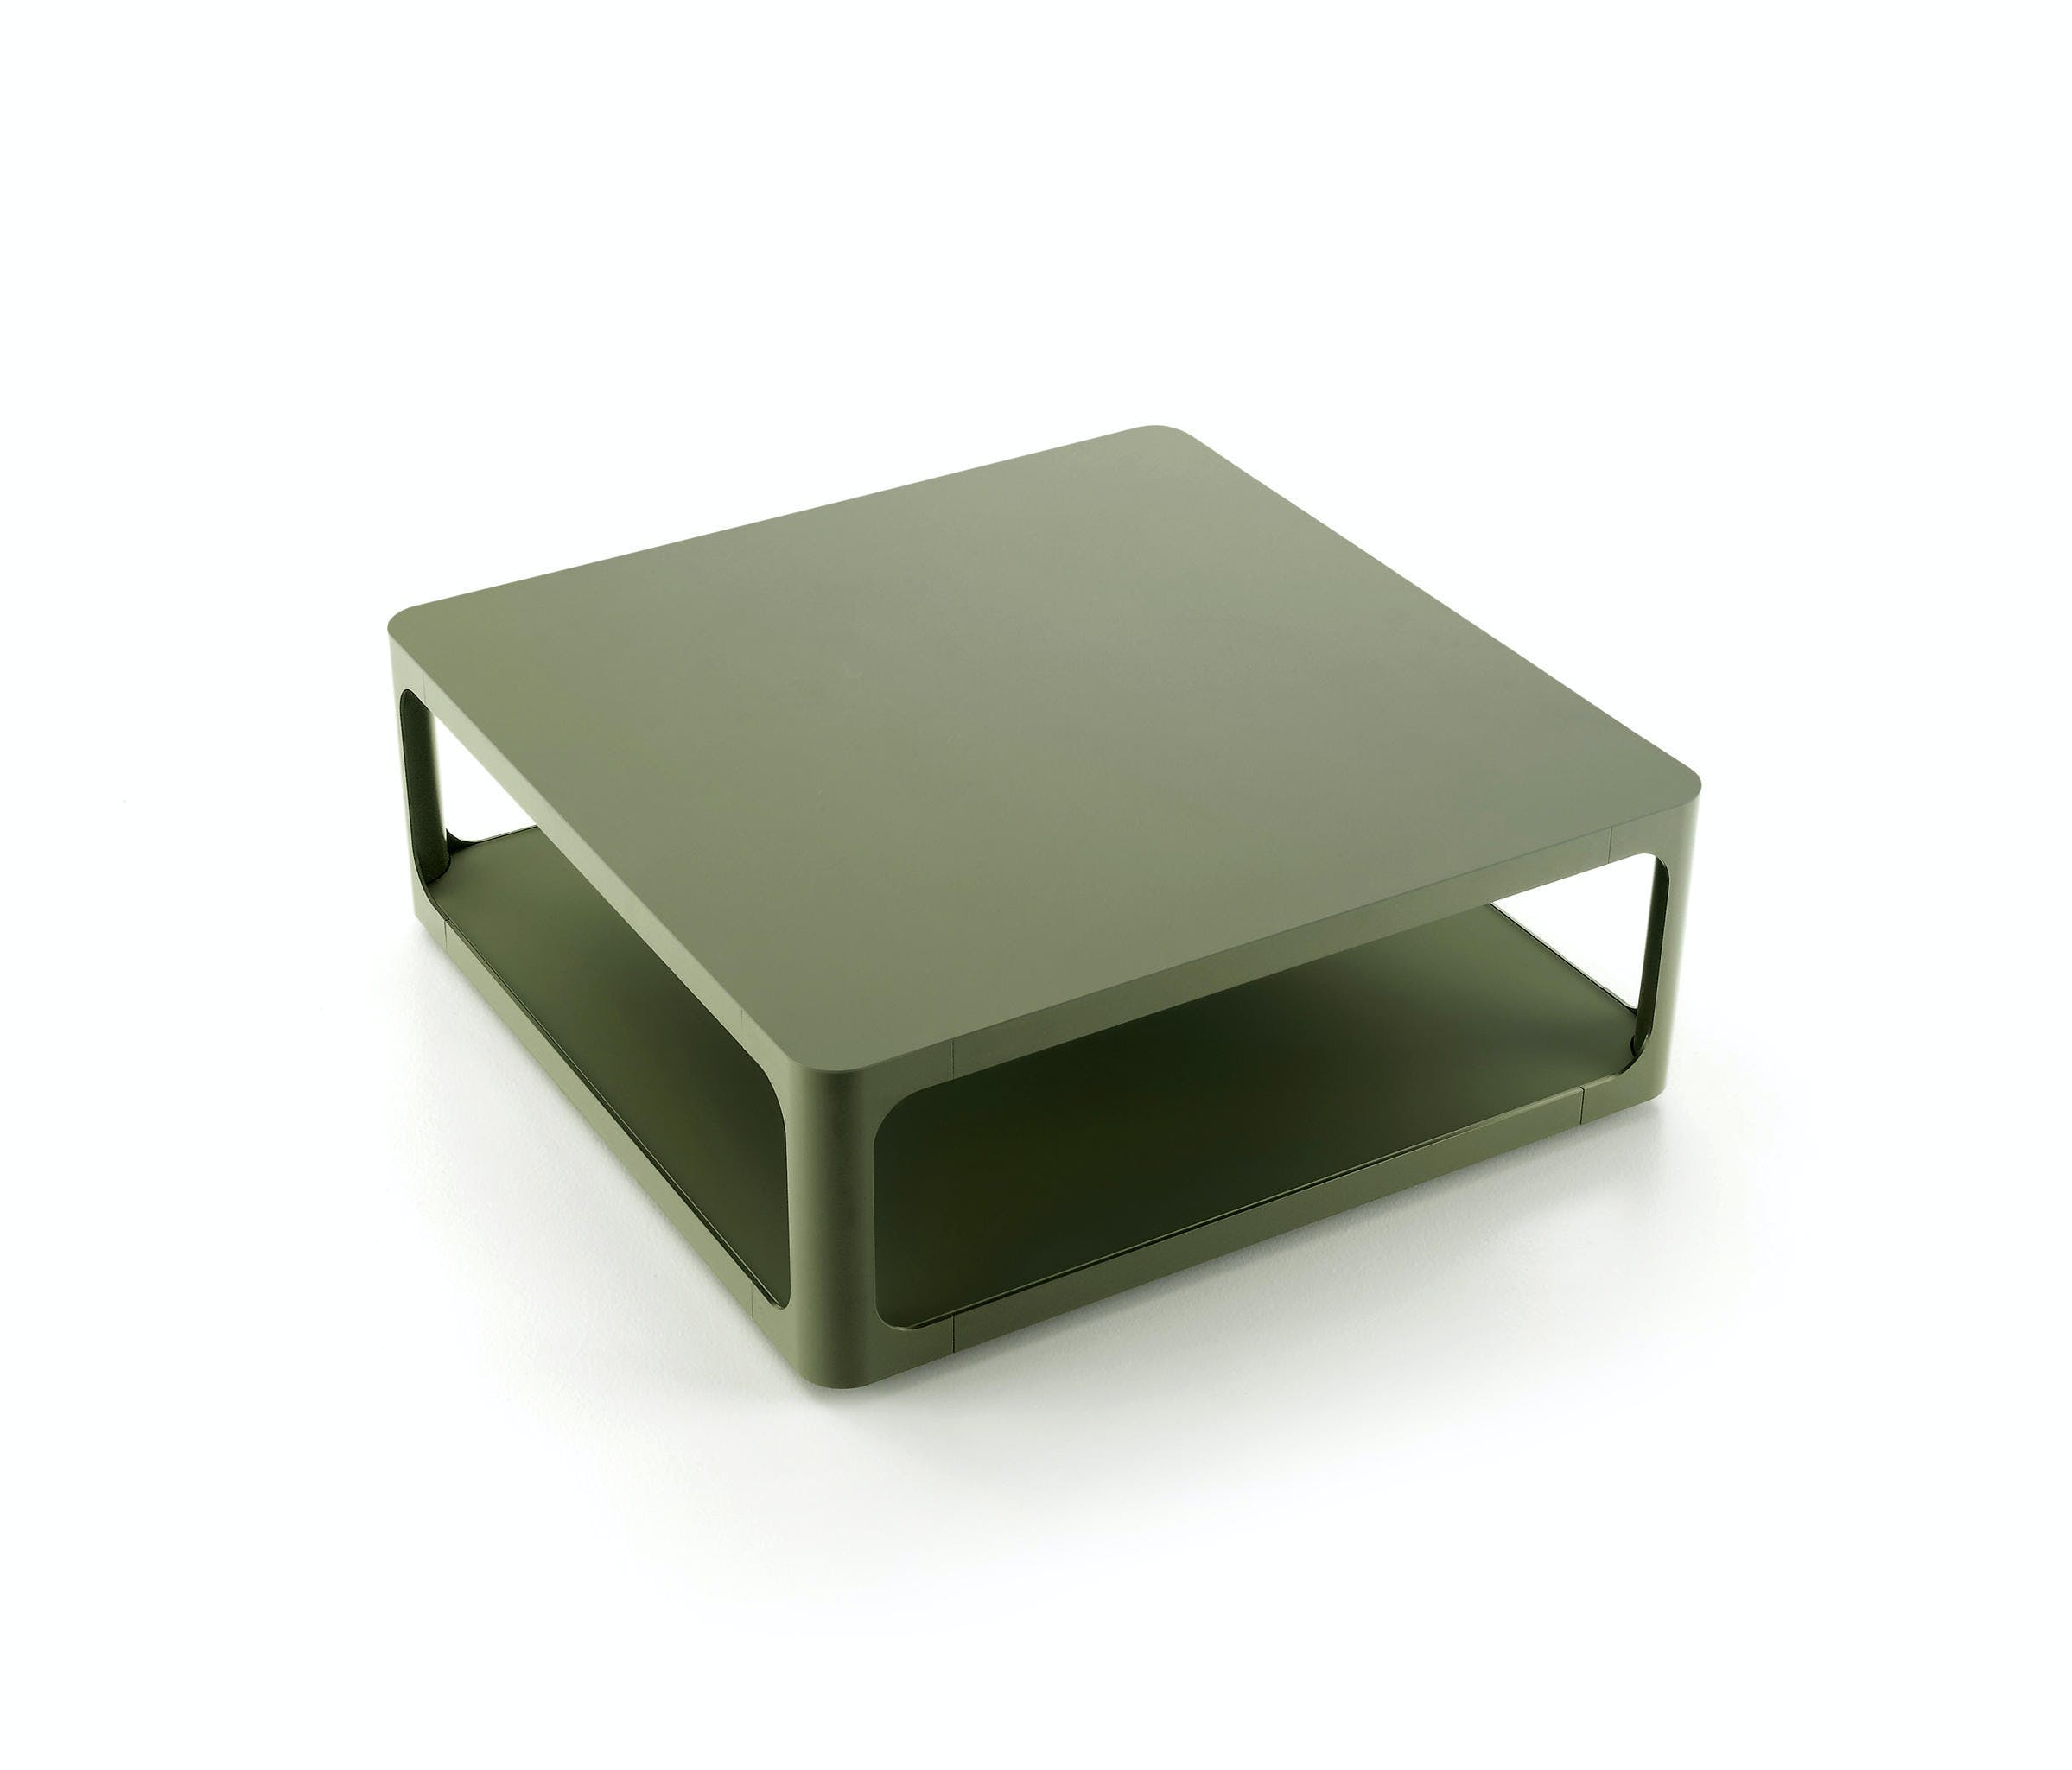 Rimadesio Olive Green Square Coffee Table Haute Living